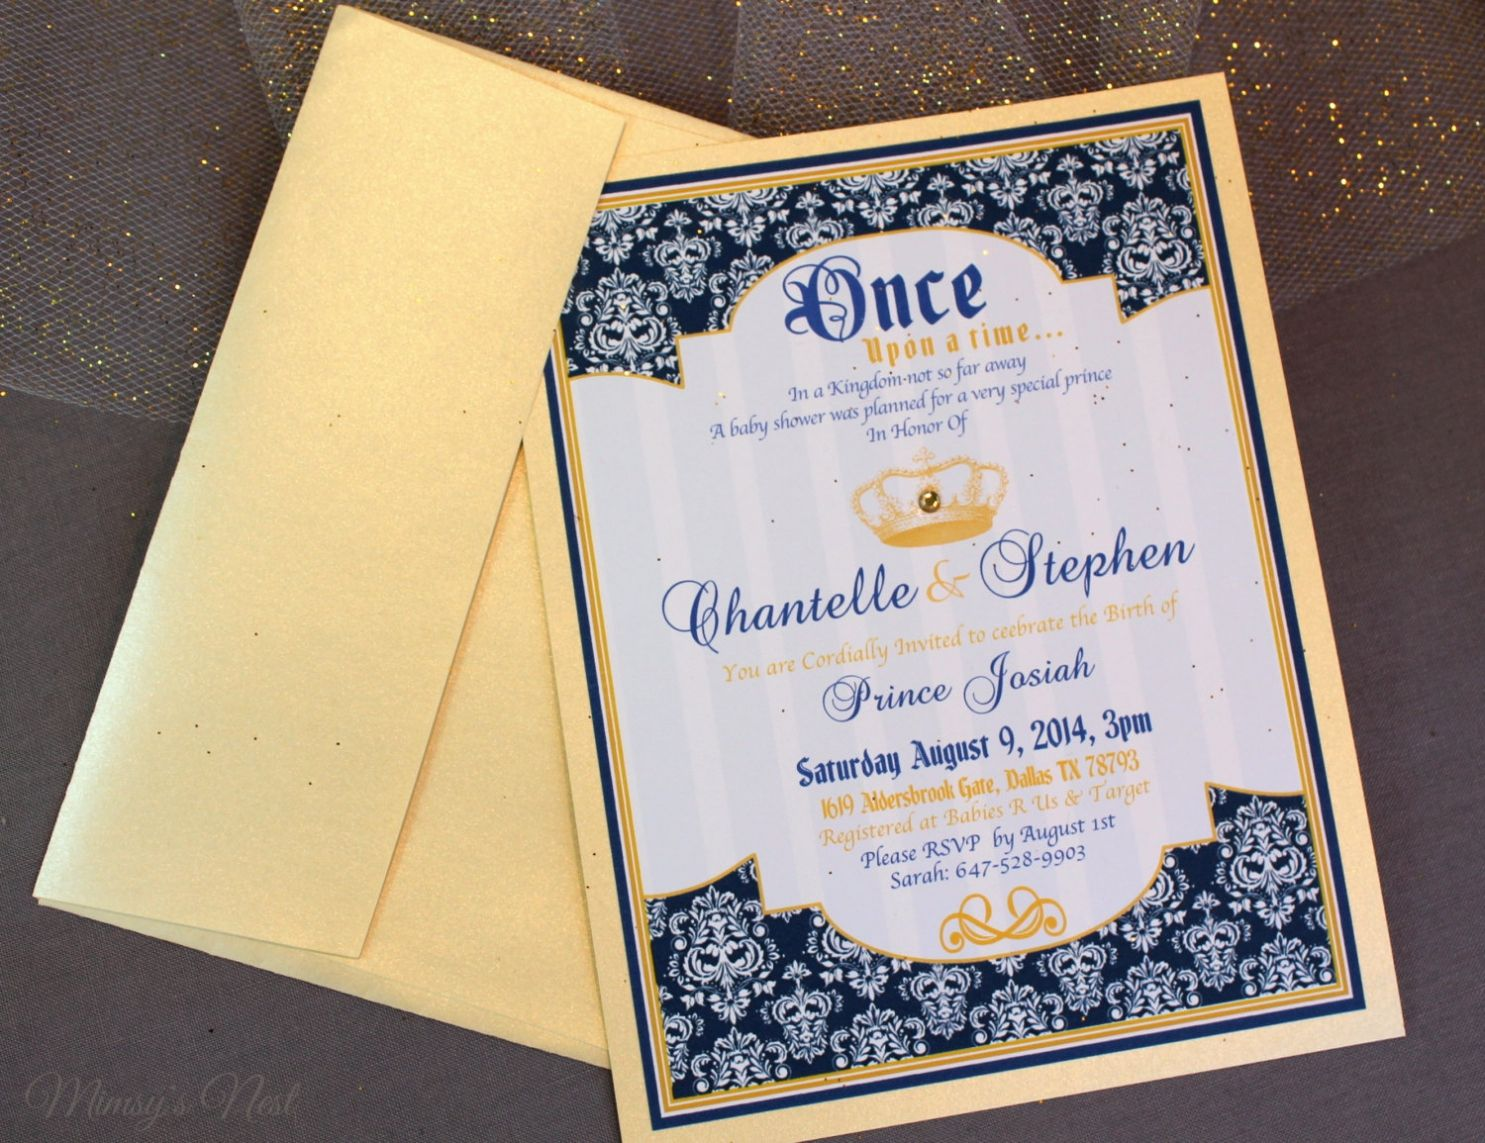 Royal Themed Baby Shower Invitations to inspire you in making breathtaking  online baby shower invitation 2964